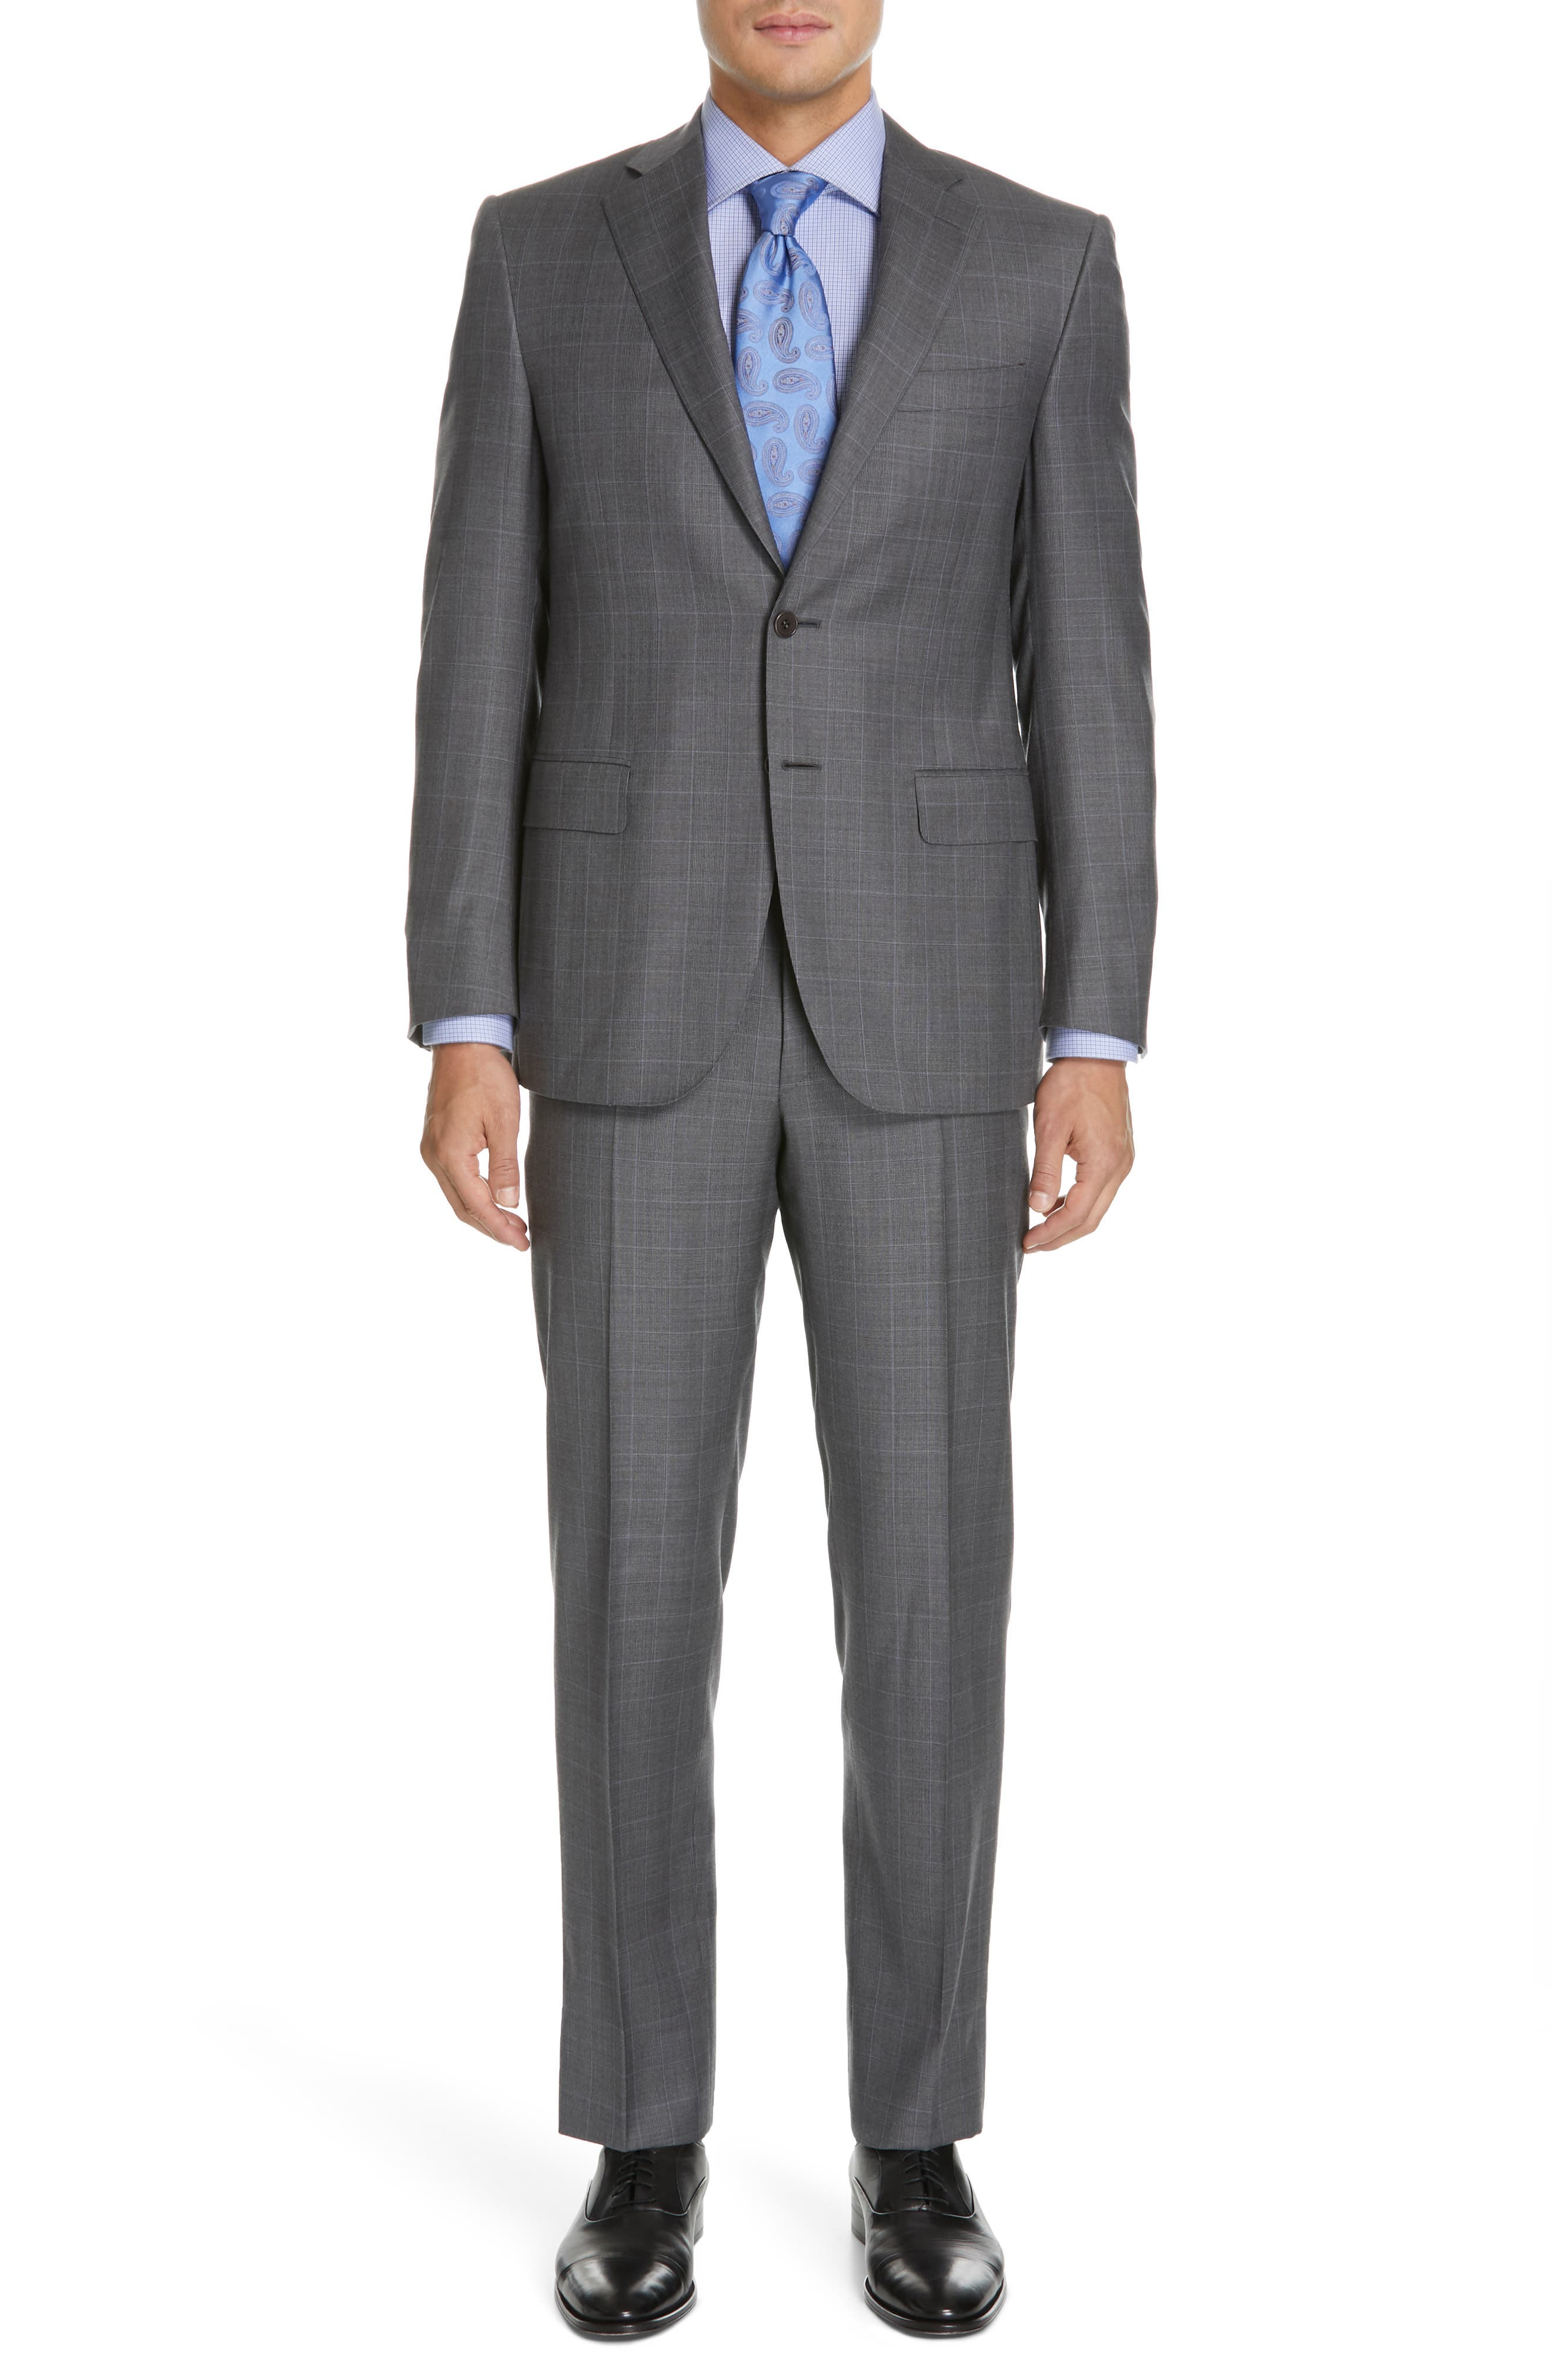 Sienna Classic Fit Plaid Wool Suit,                             Main thumbnail 1, color,                             GREY